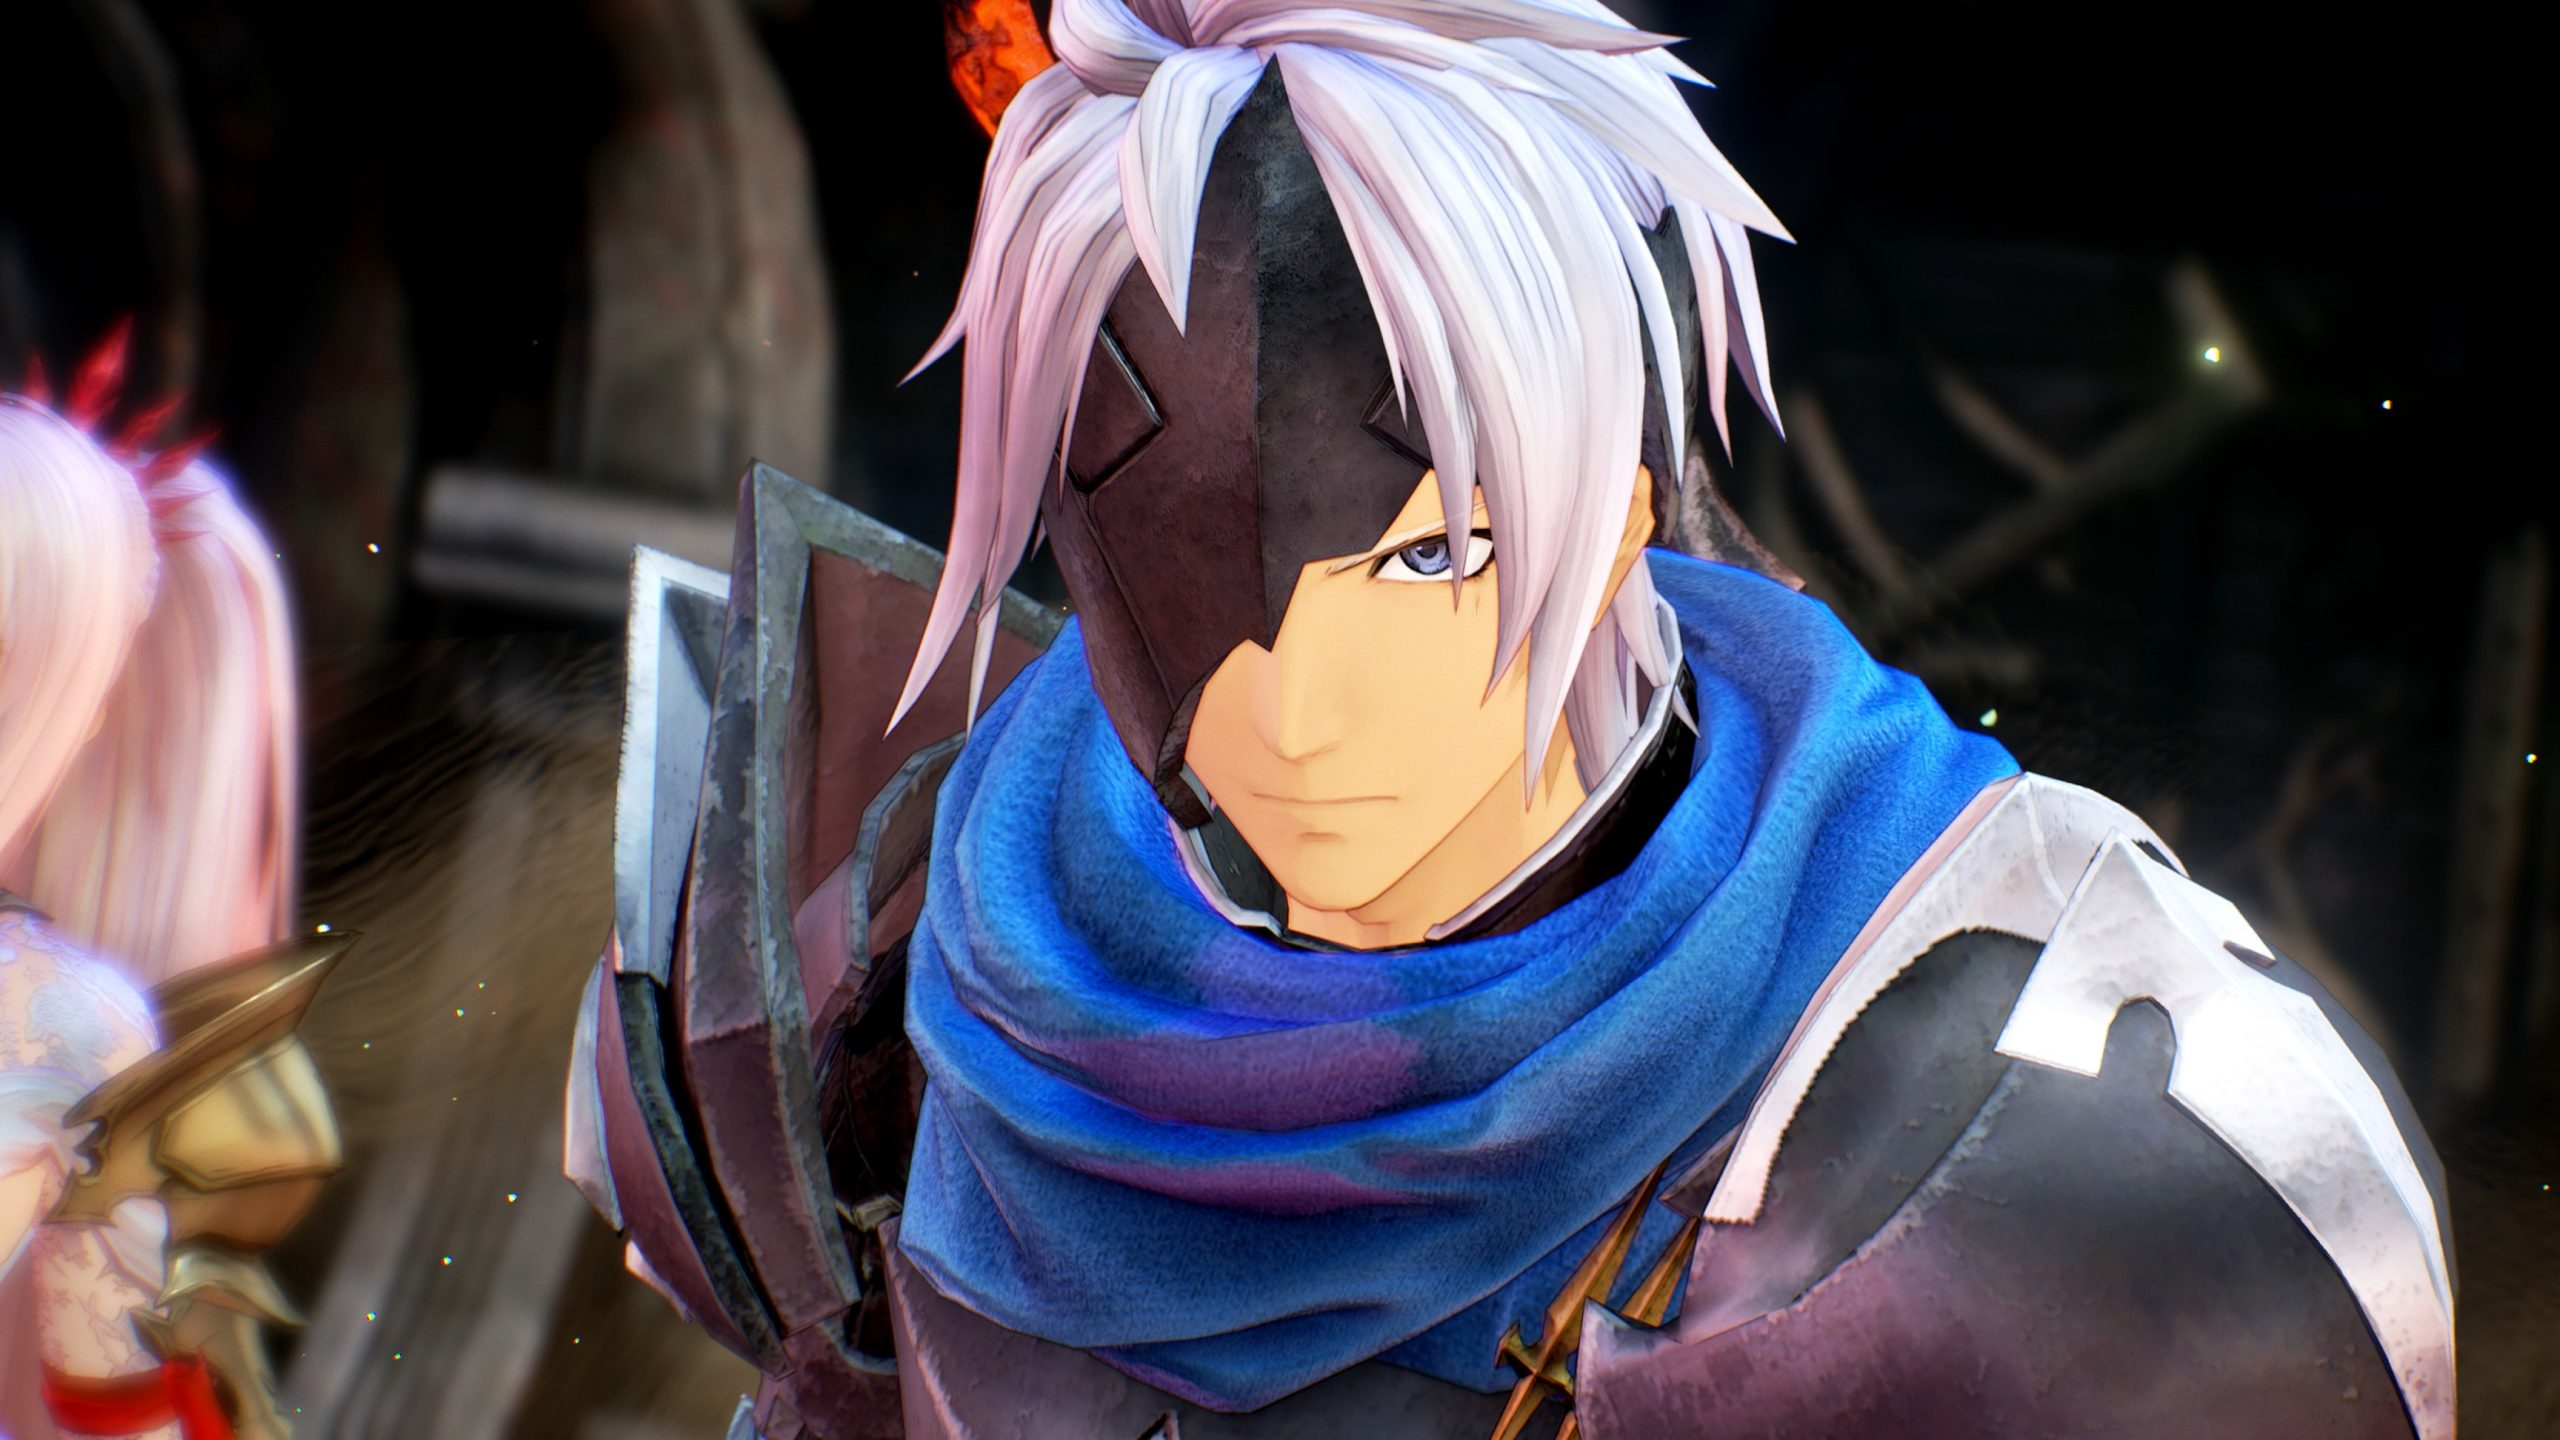 A close up of the protagonist of Tales of Arise, called Alphen, who has half a mask obscuring half of his face.